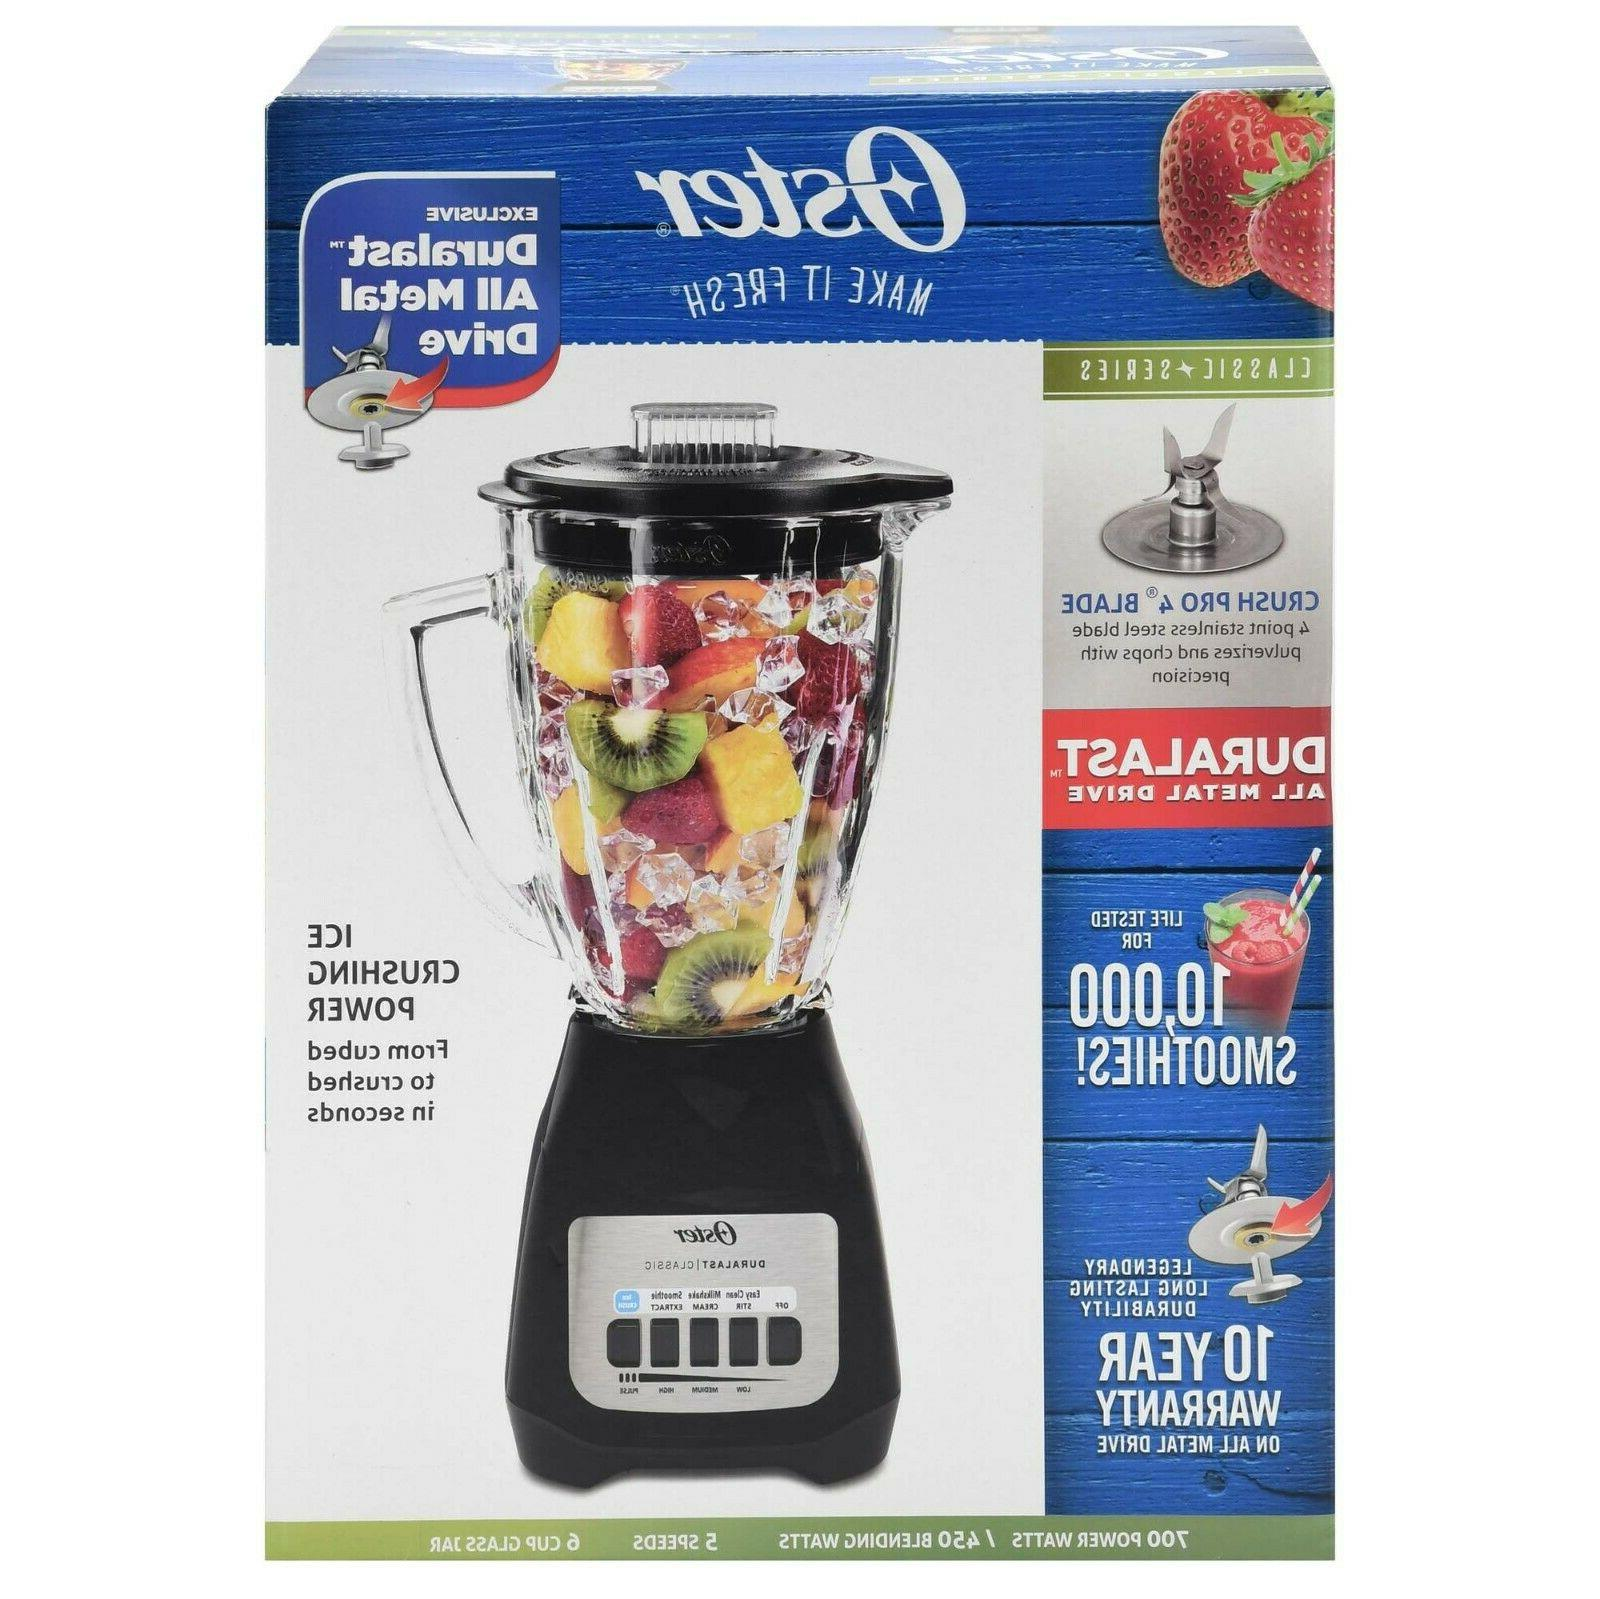 Oster Classic Series Blender, Dishwasher Stainless Steel